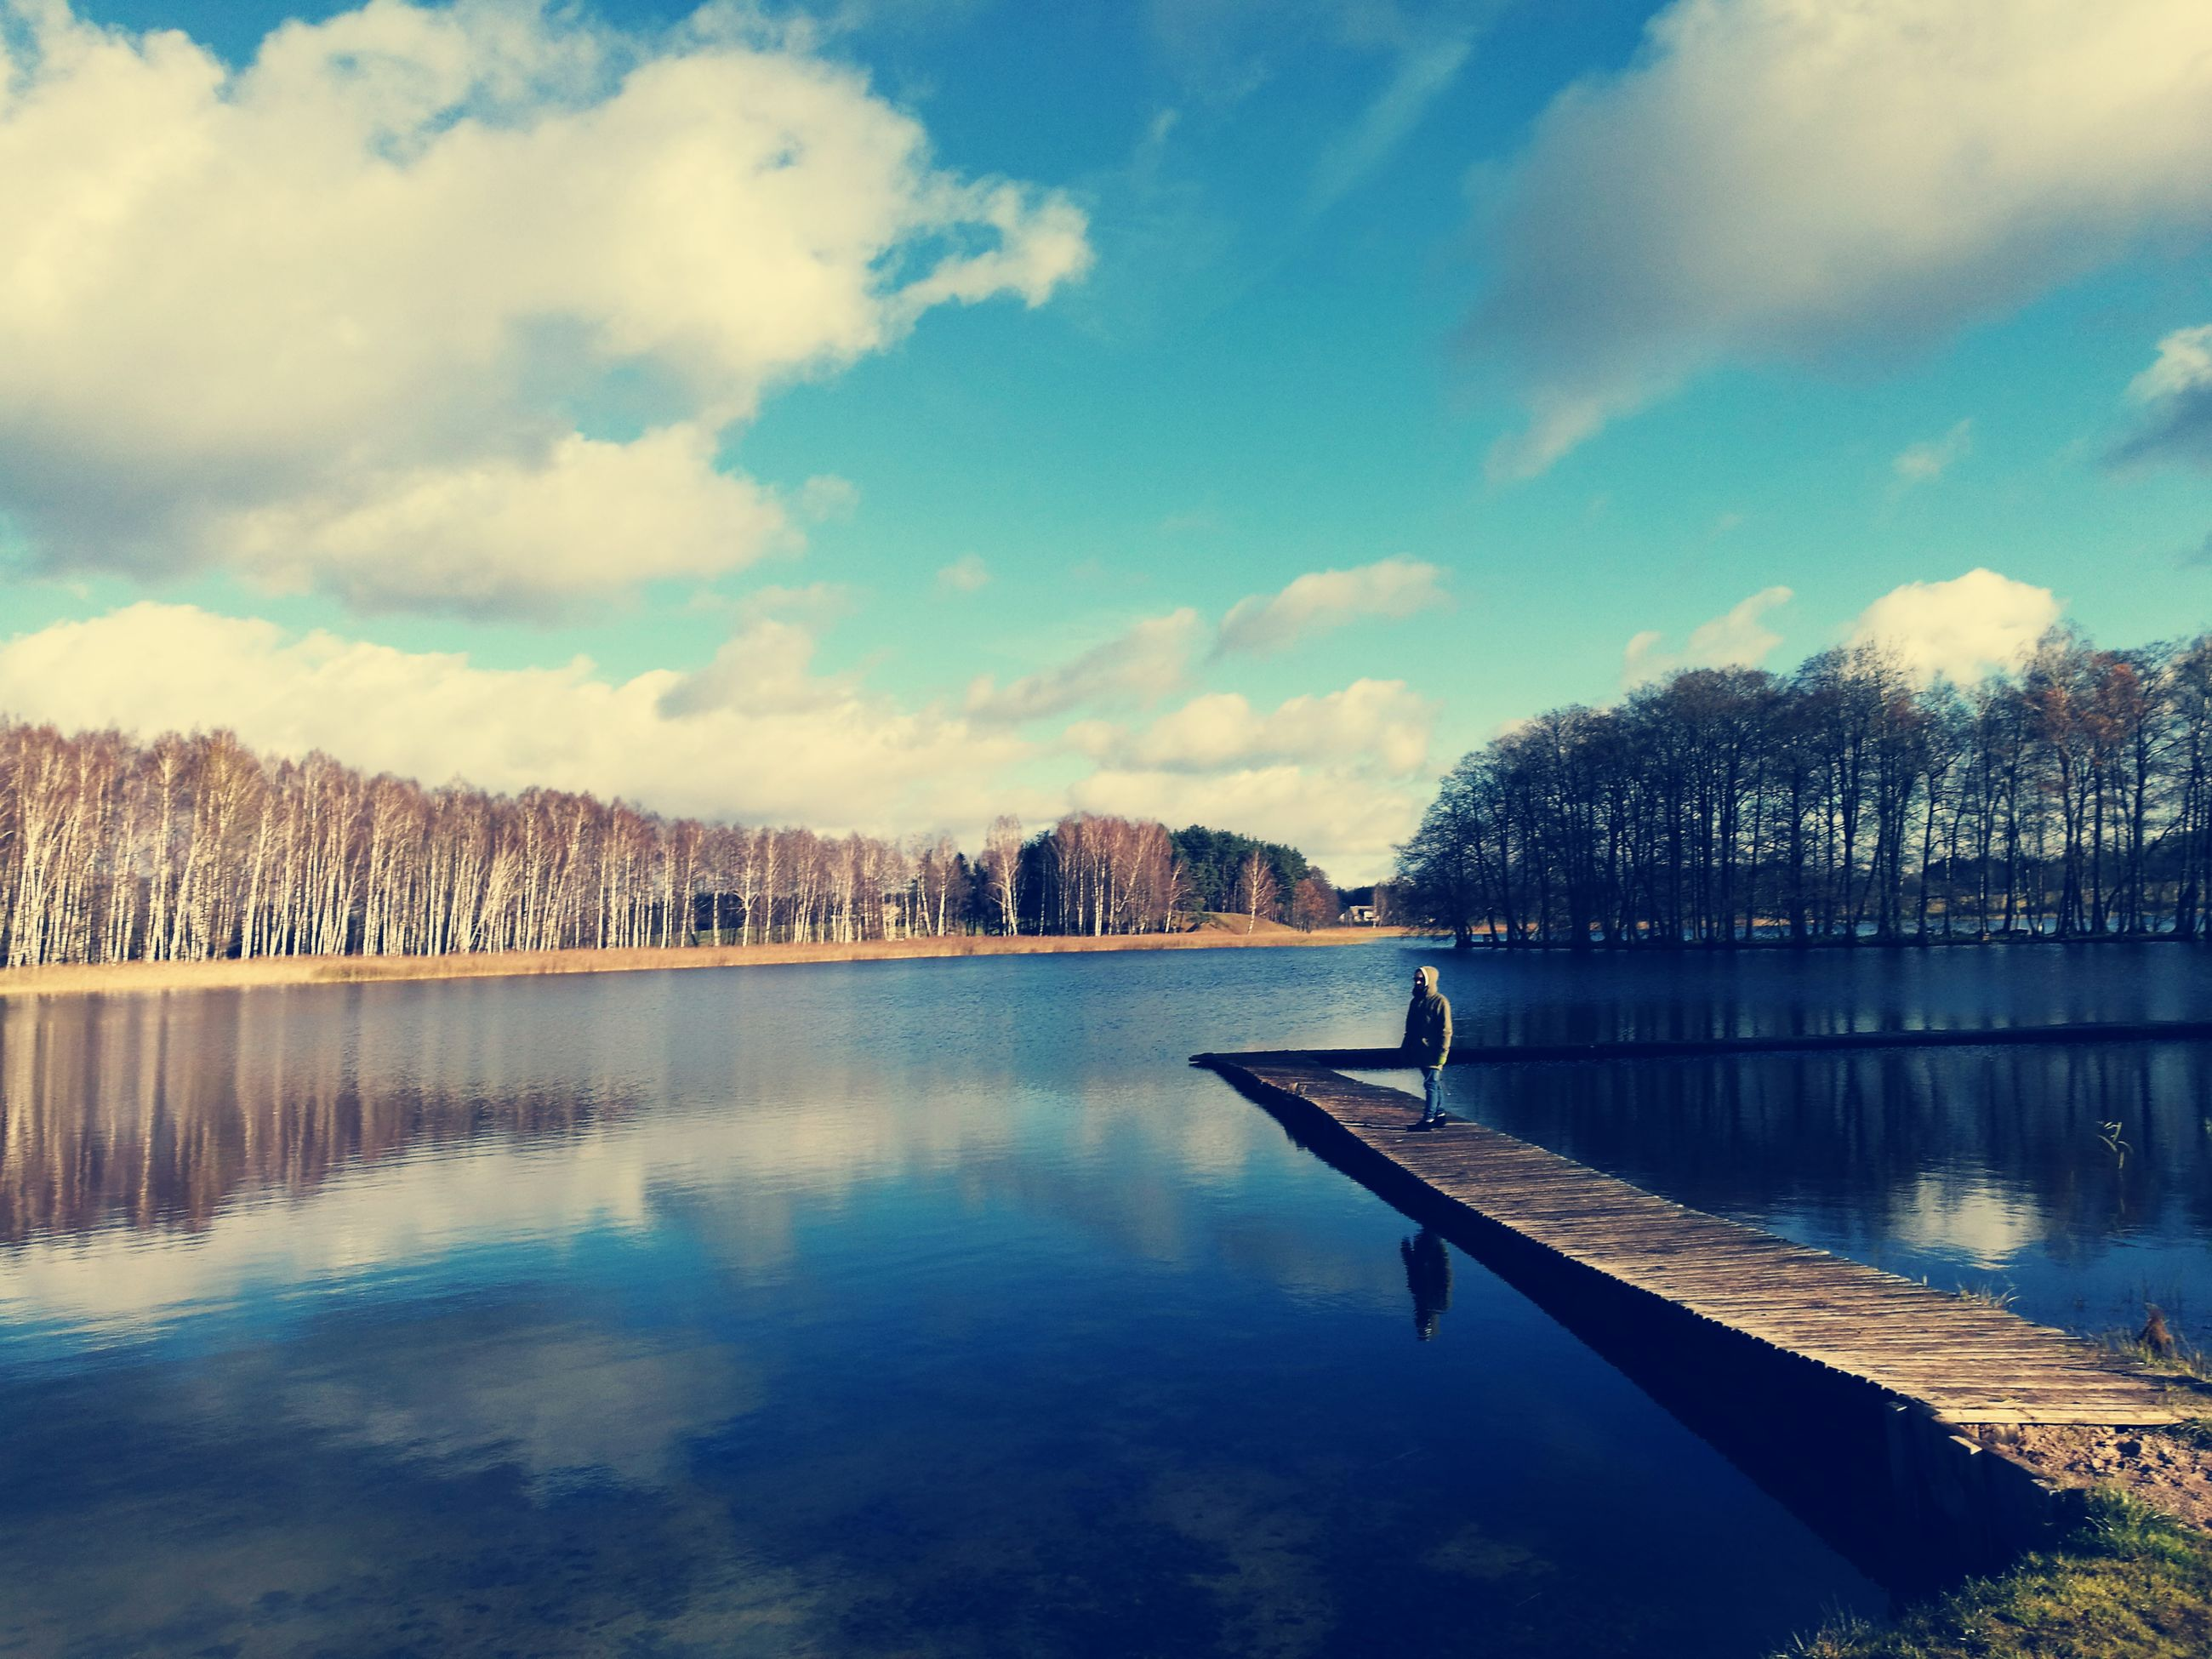 water, tree, sky, cloud - sky, no people, nature, beauty in nature, outdoors, lake, tranquility, day, waterfront, scenics, built structure, tranquil scene, building exterior, architecture